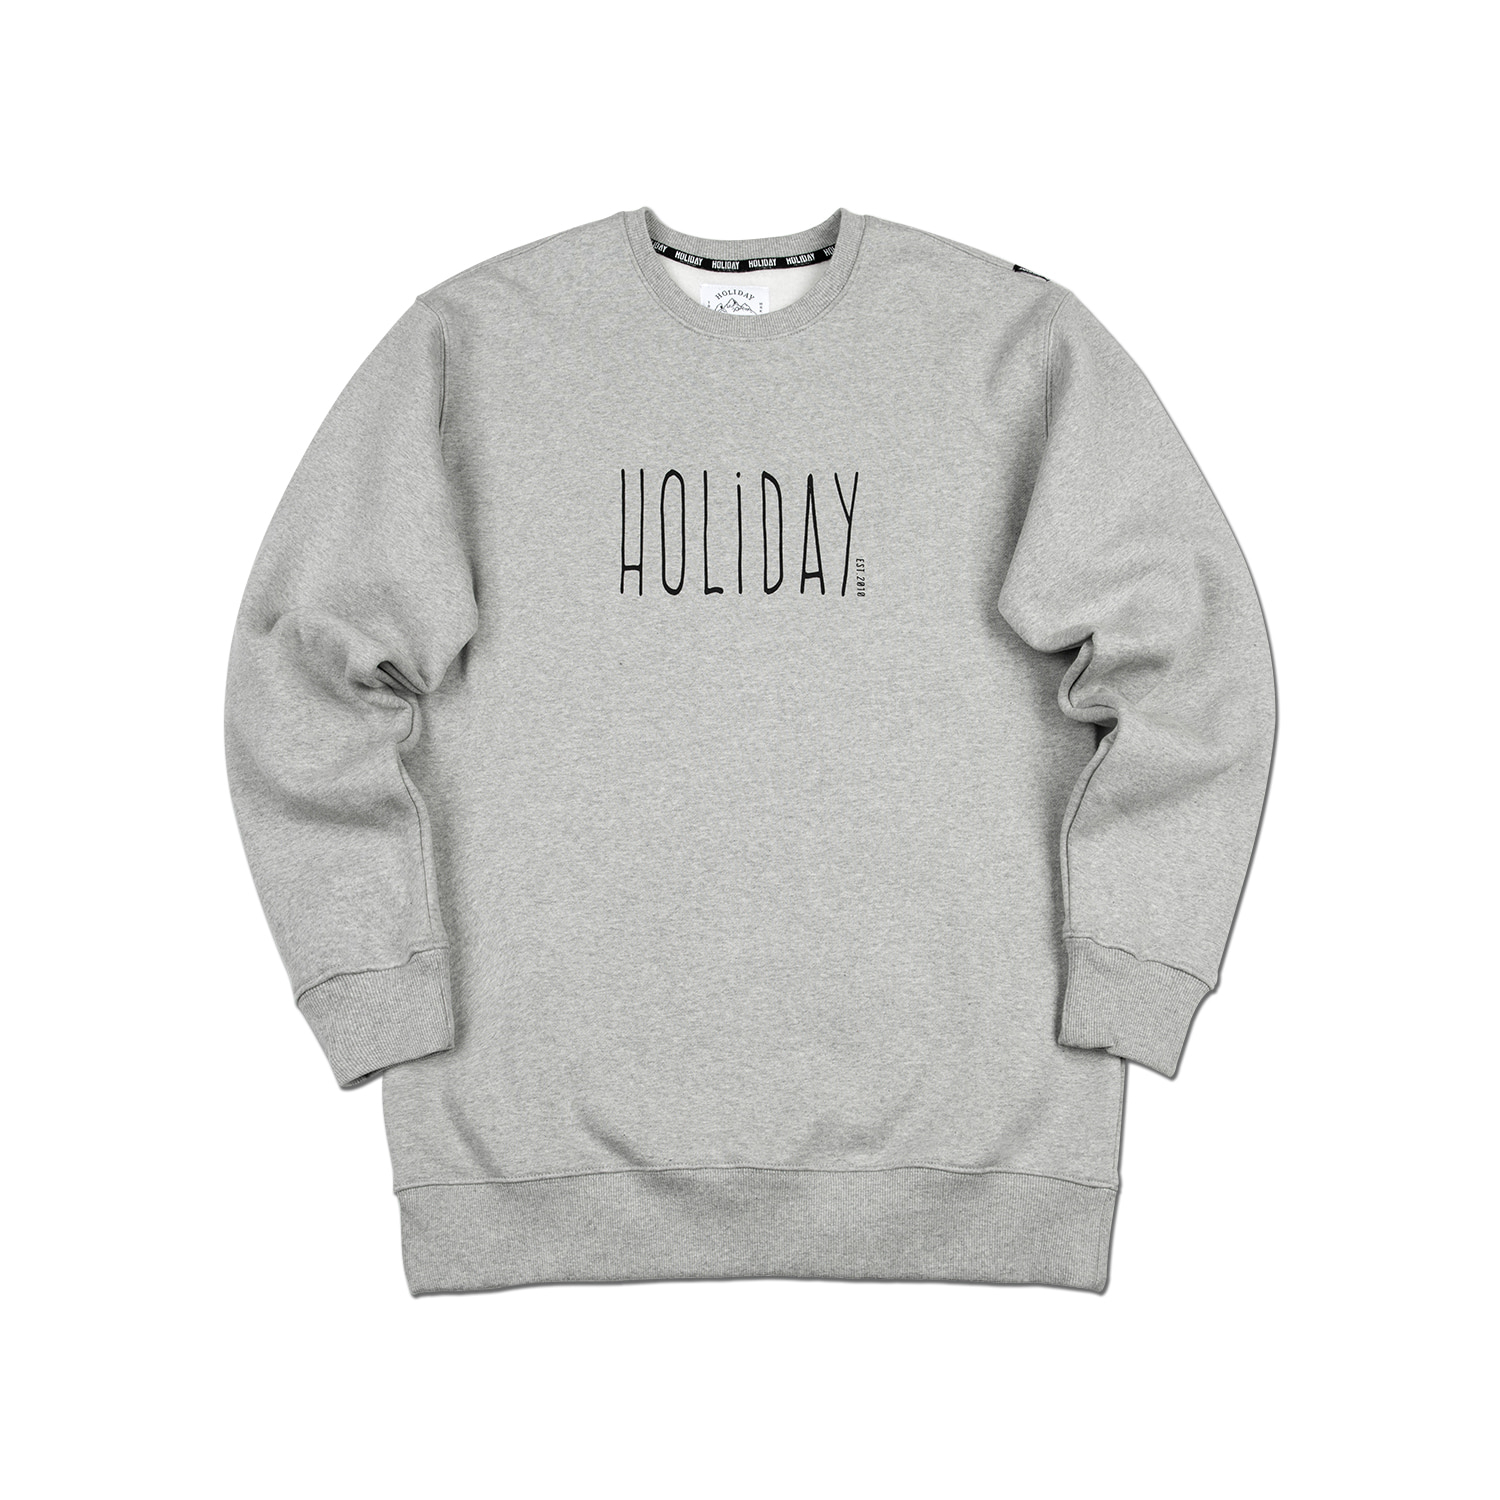 JOY crewneck - melangeHOLIDAY OUTERWEAR